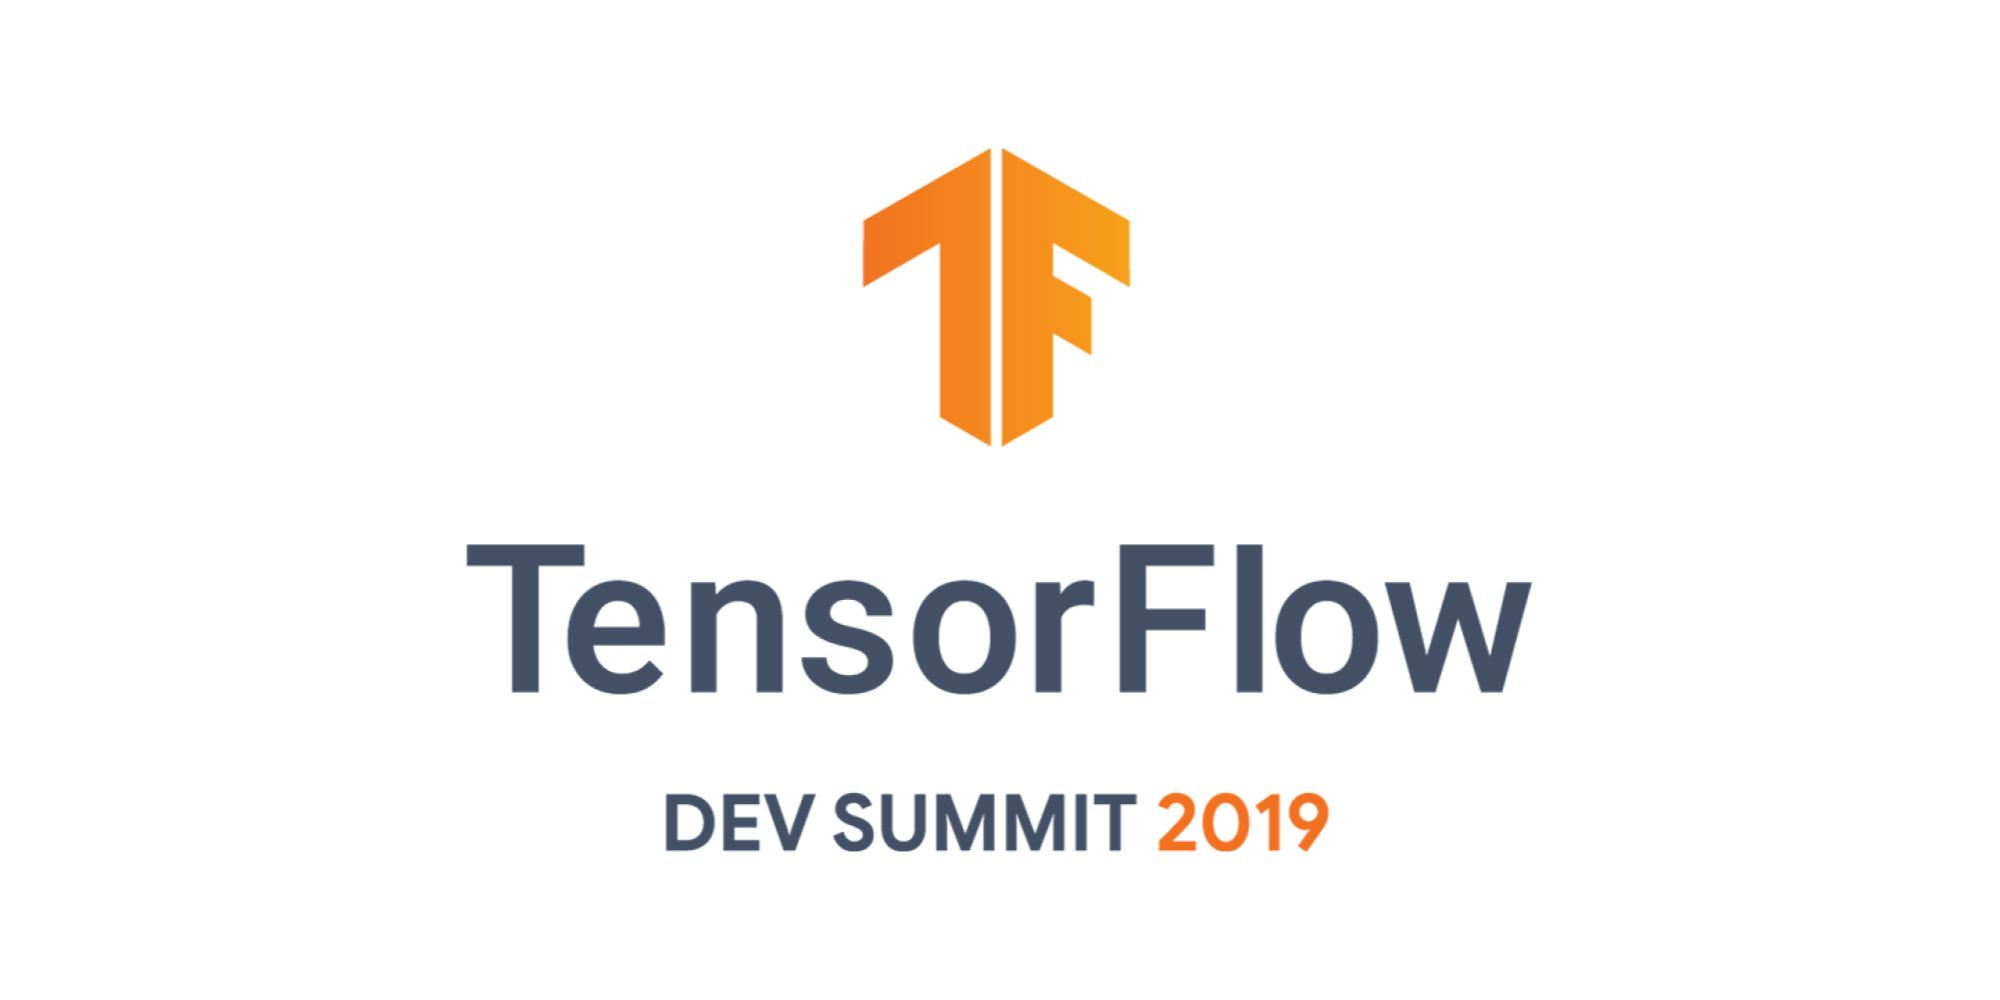 Google previews TensorFlow 2 0 alpha with focus on simplicity and ML